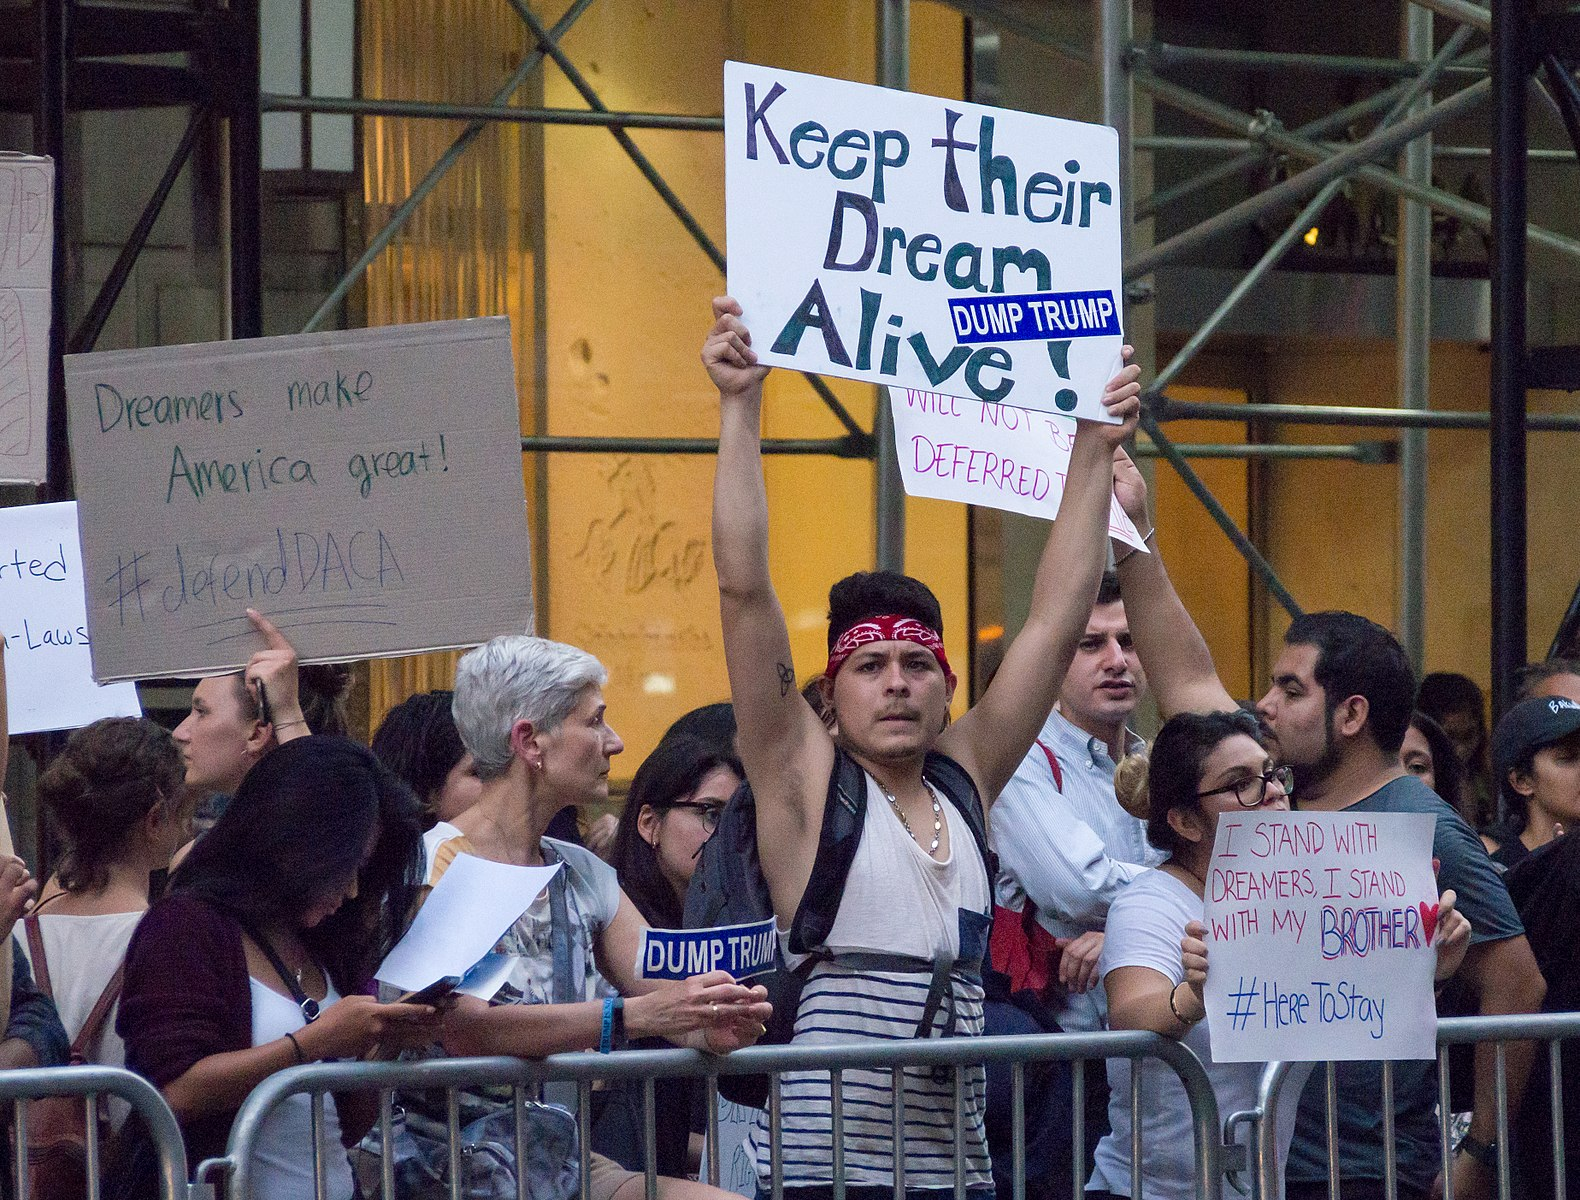 Protesters gather in support of DACA at Trump Tower in New York City. Photo credit: Rhododendrites, Wikimedia Commons.